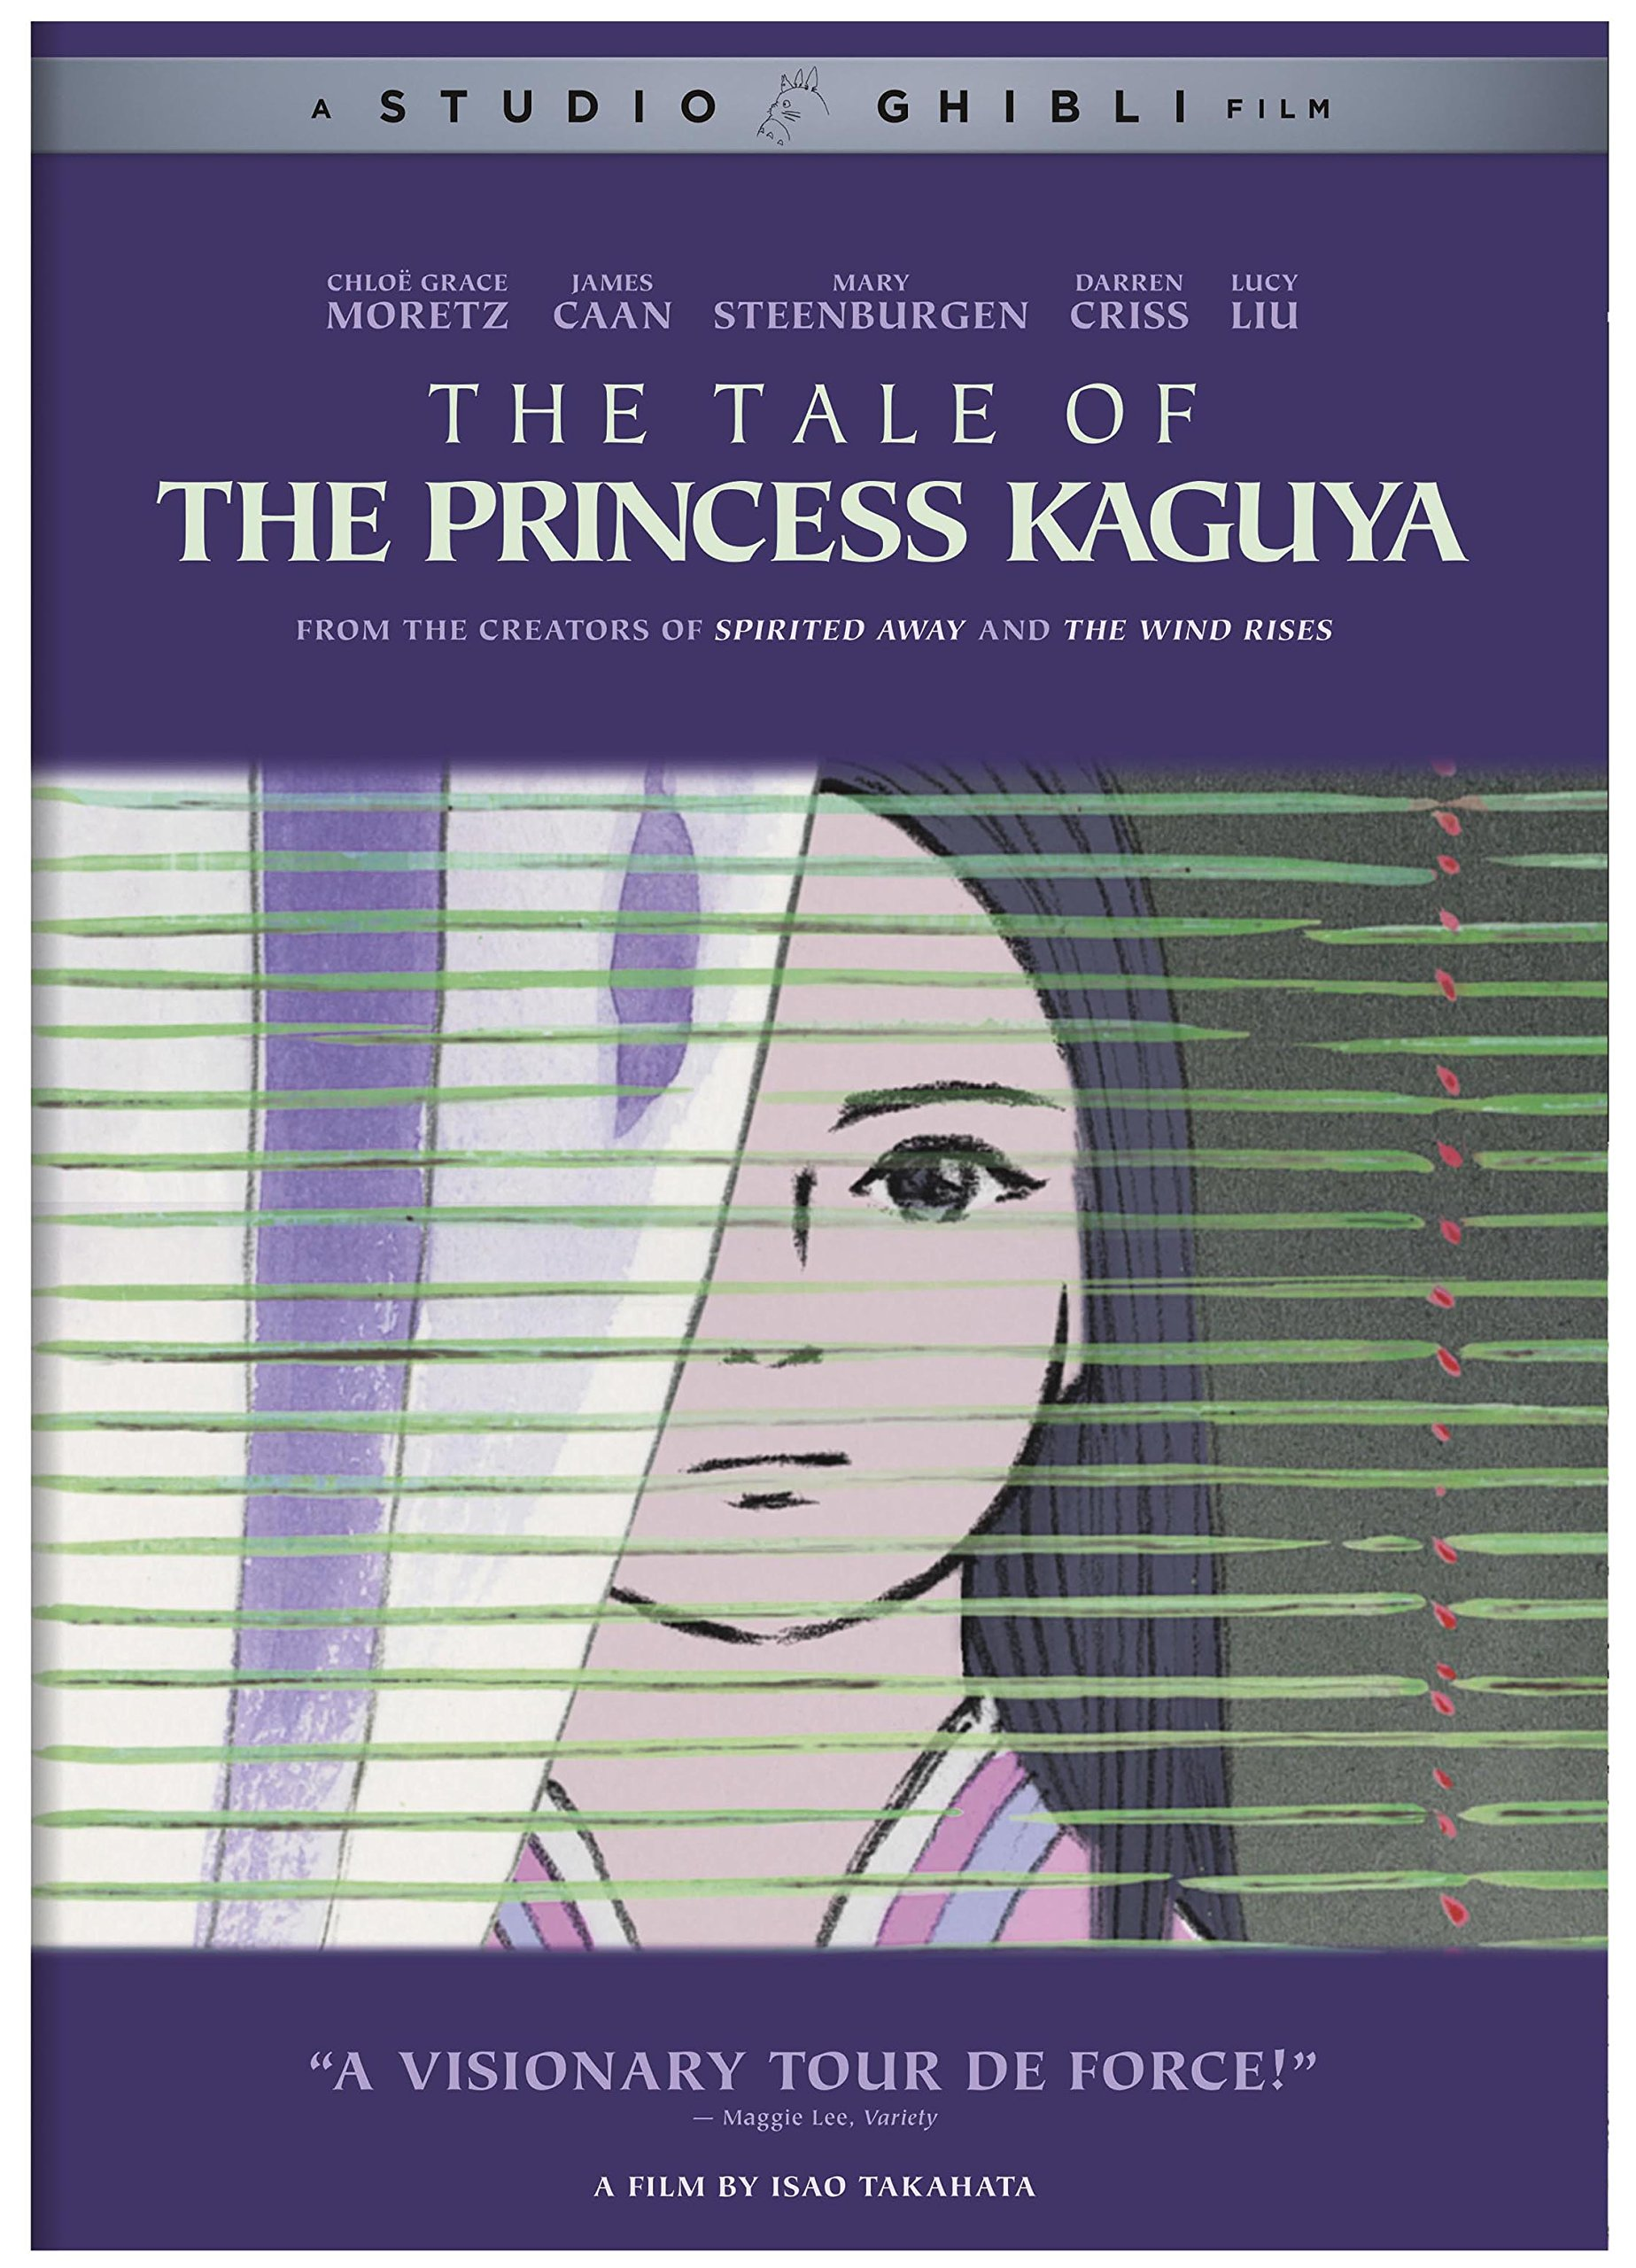 The Tale of the Princess Kaguya (Snap Case, Slipsleeve Packaging, 2PC)